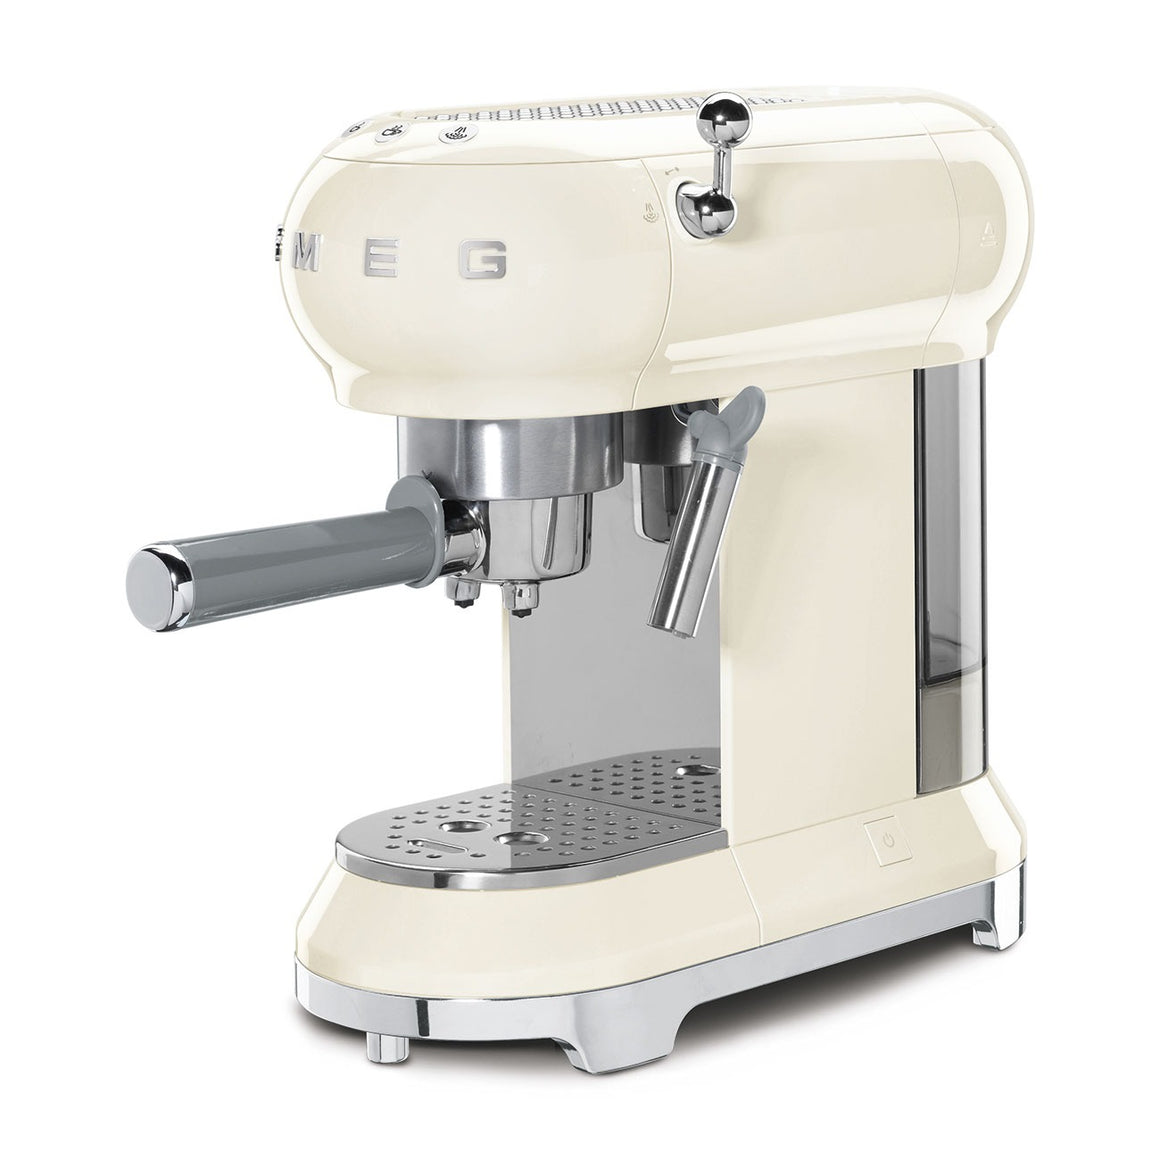 SMEG - 50's Espresso Coffee Machine, Cream